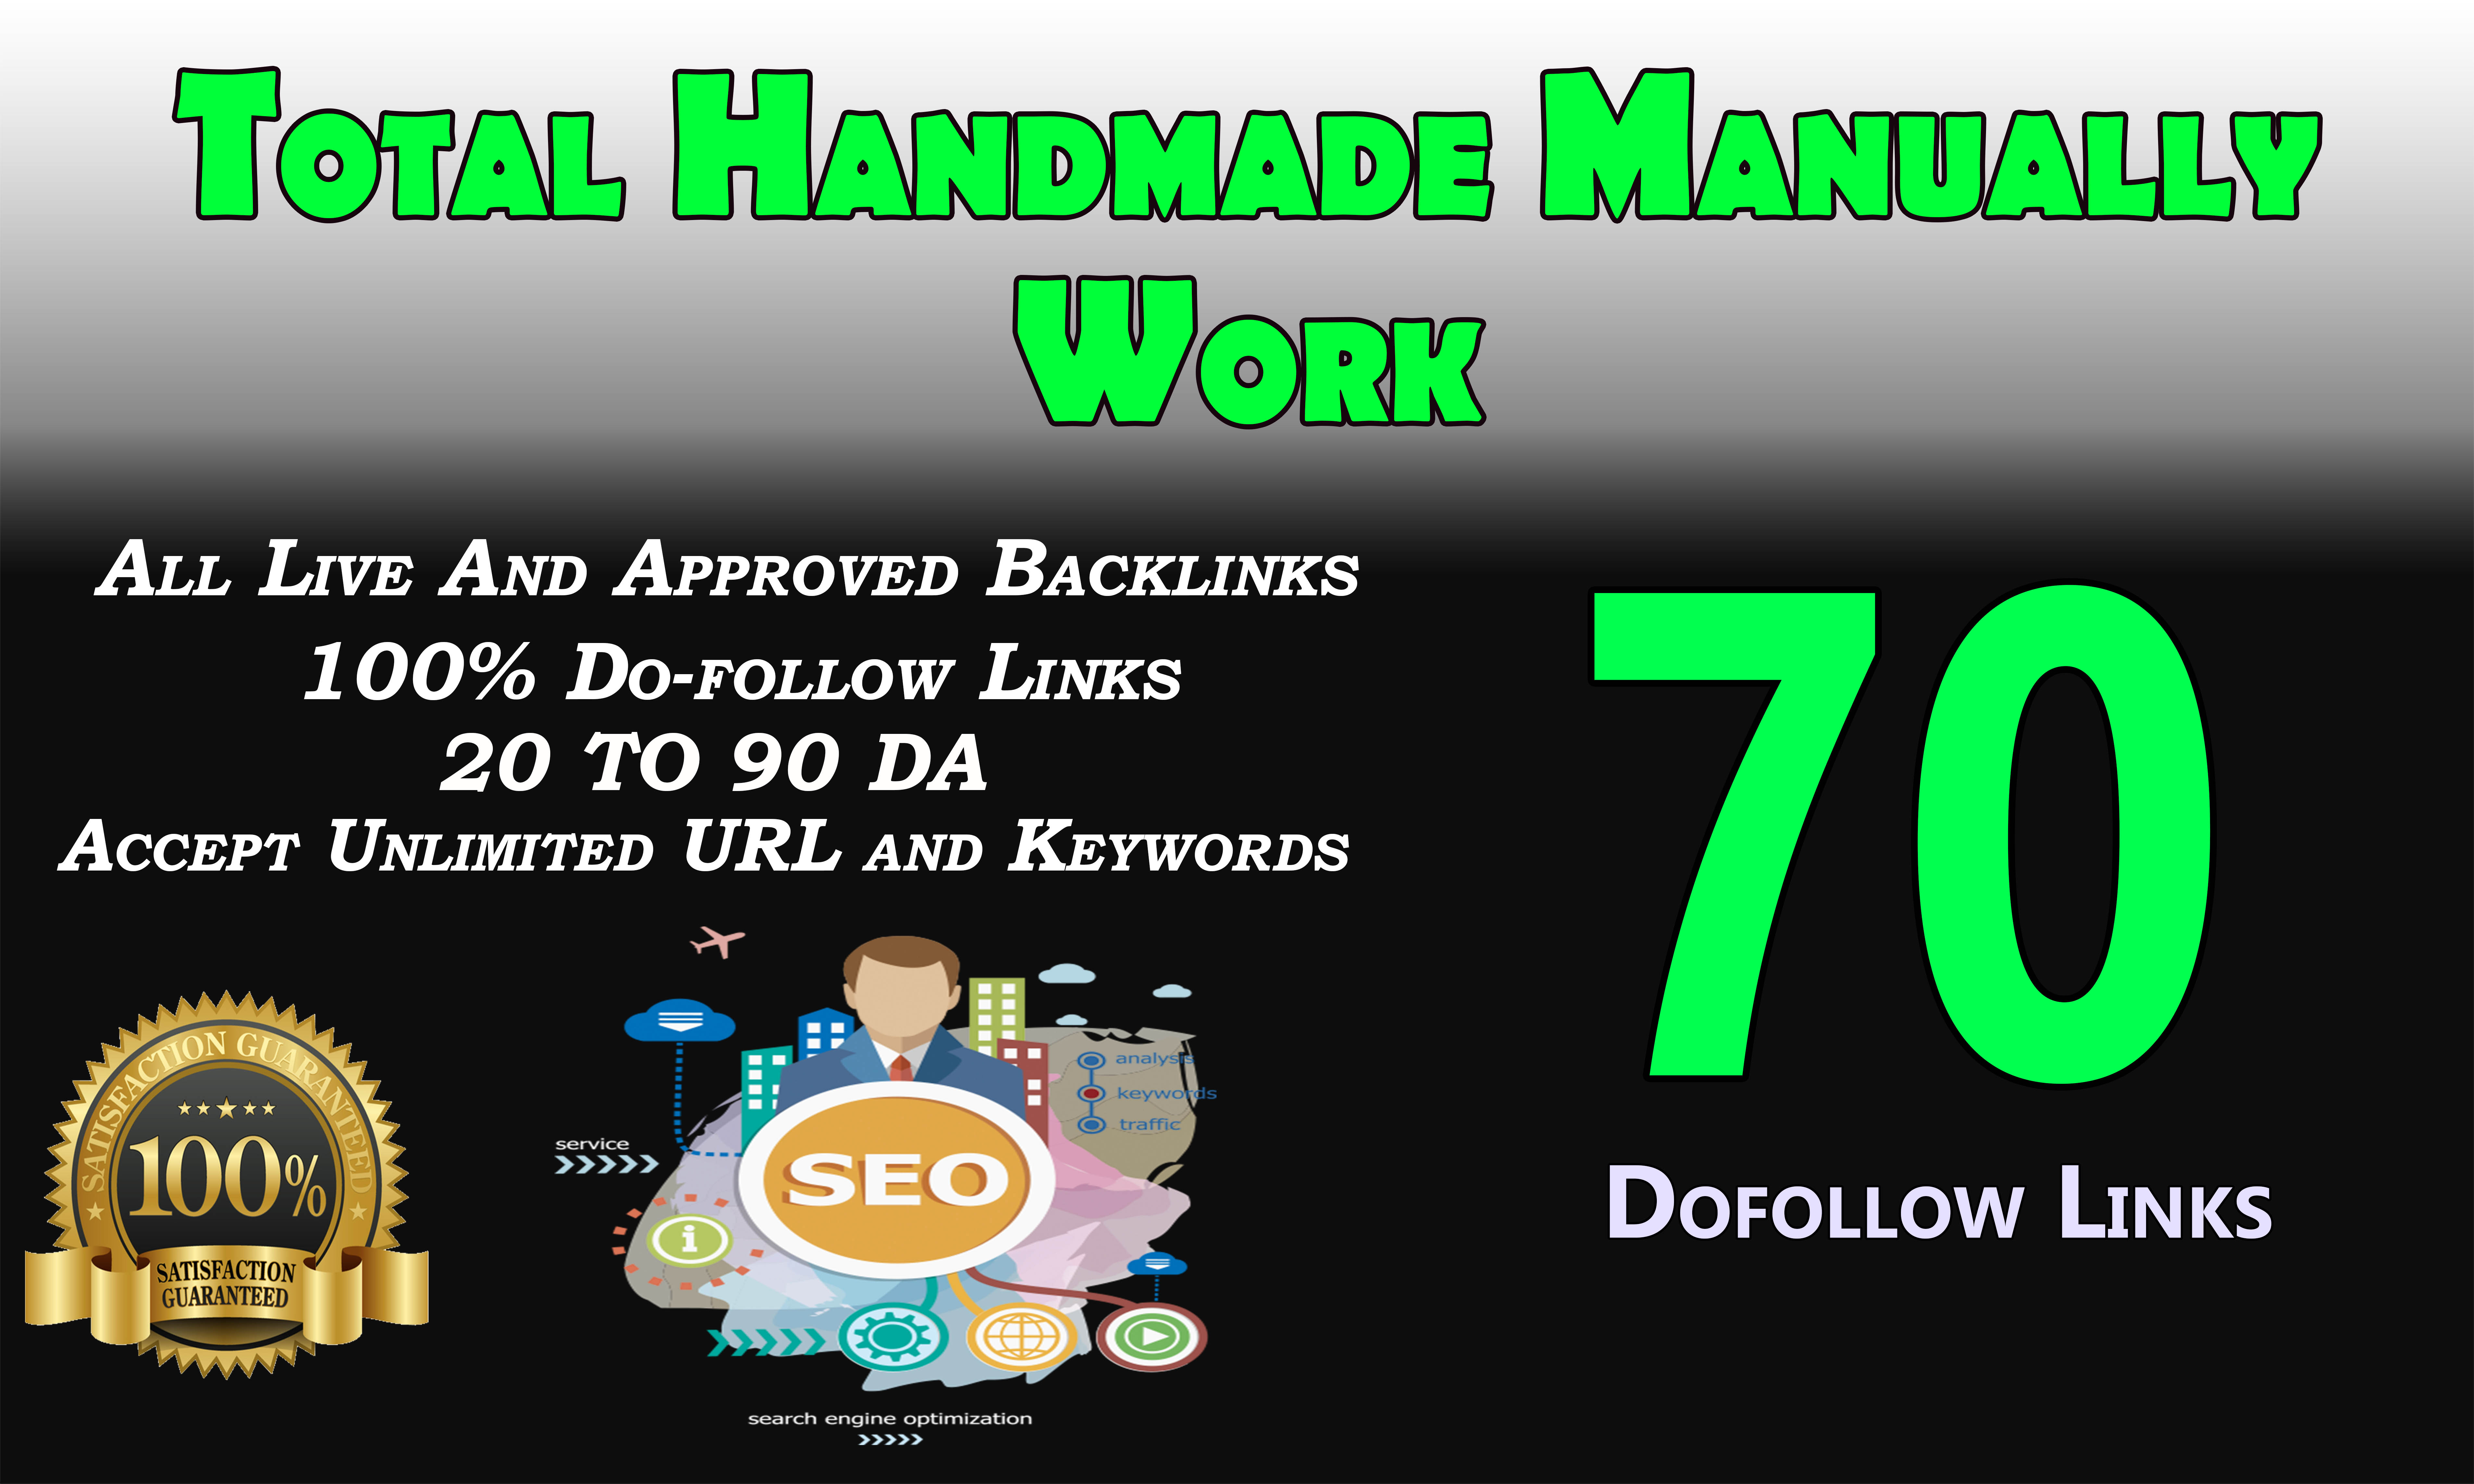 i will provide 70 high quality backlink buy 1 Get 1 Free Basic pack